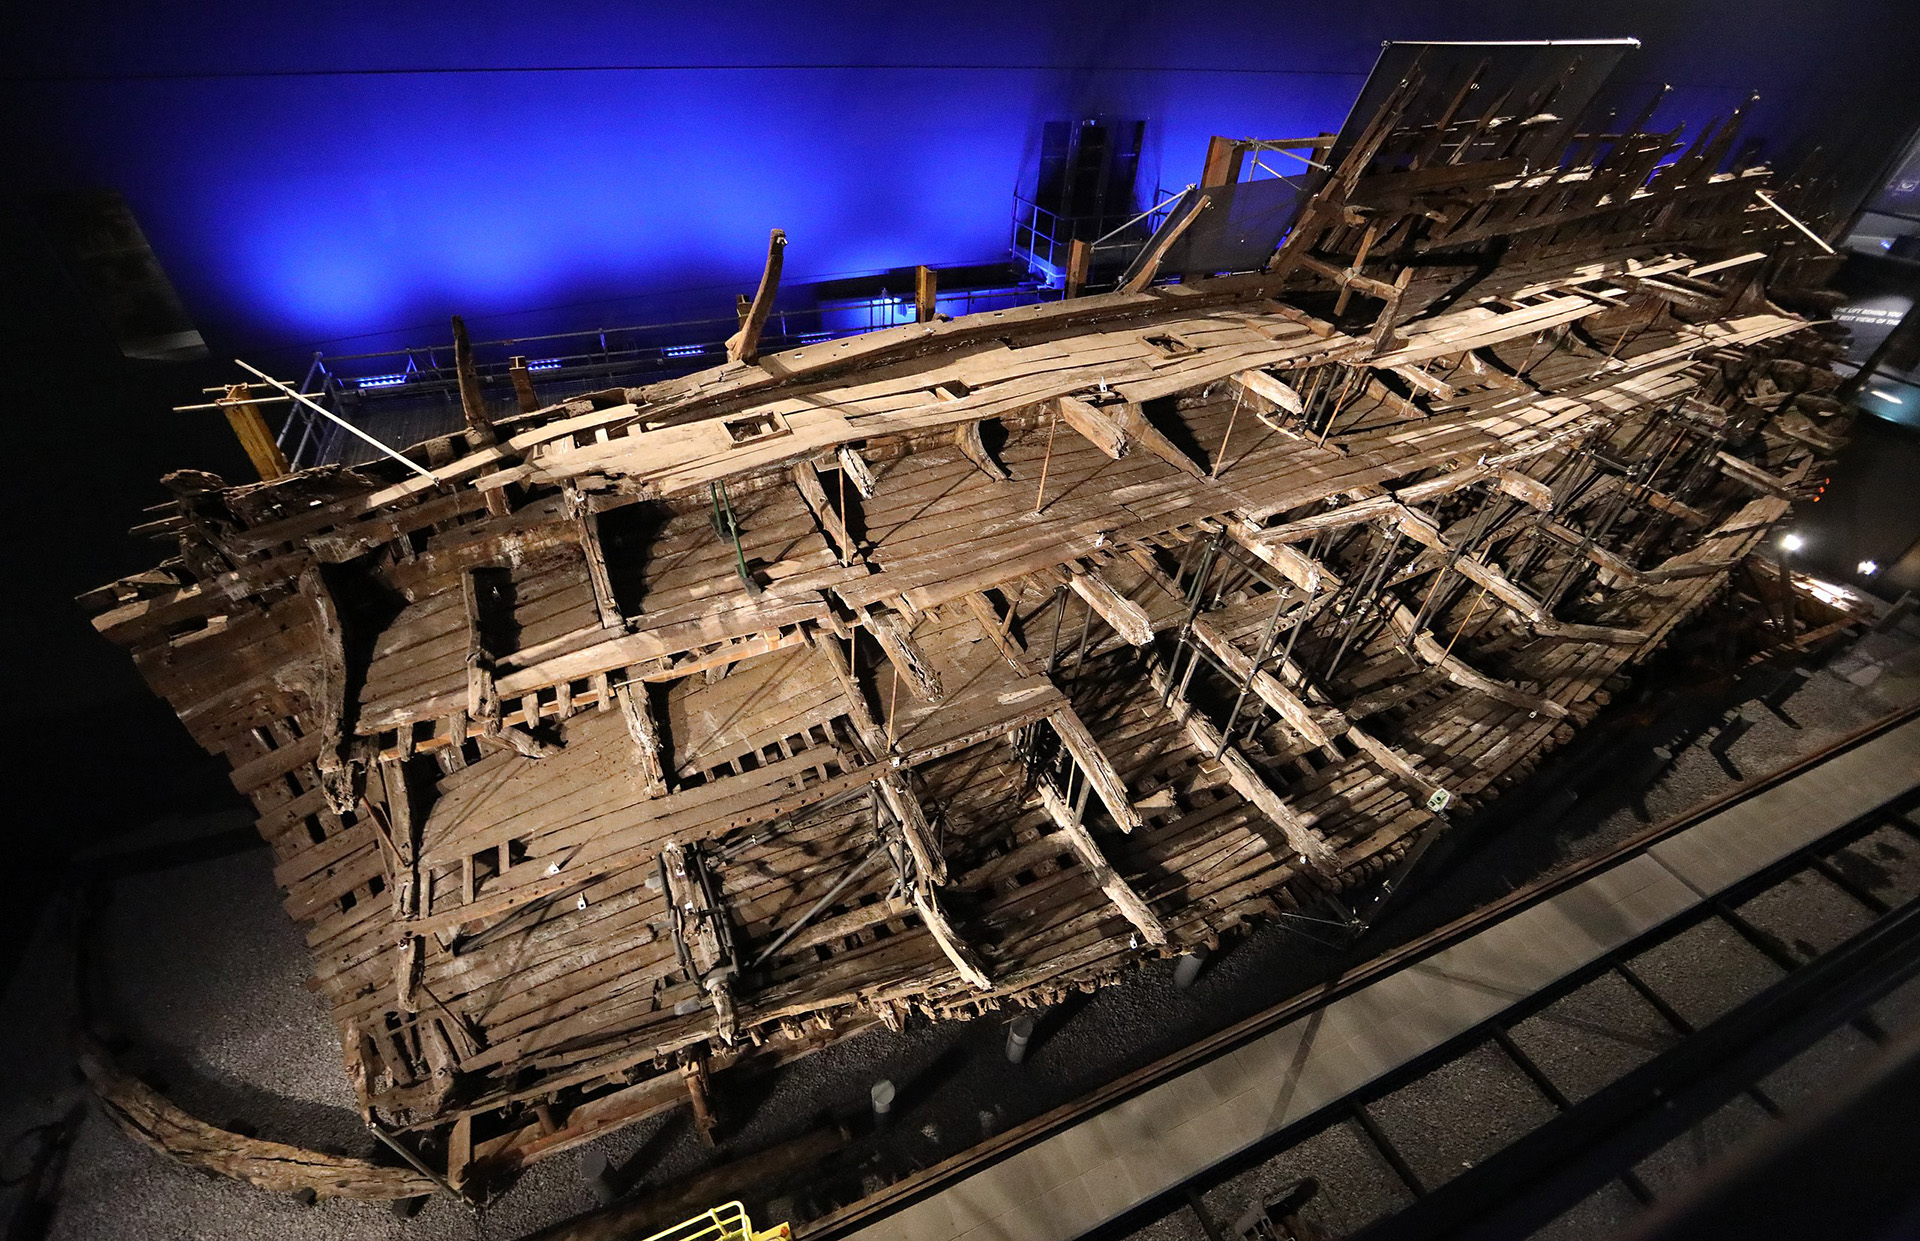 Remains of the Mary Rose and support structure, July 2019,photo byuser:geni